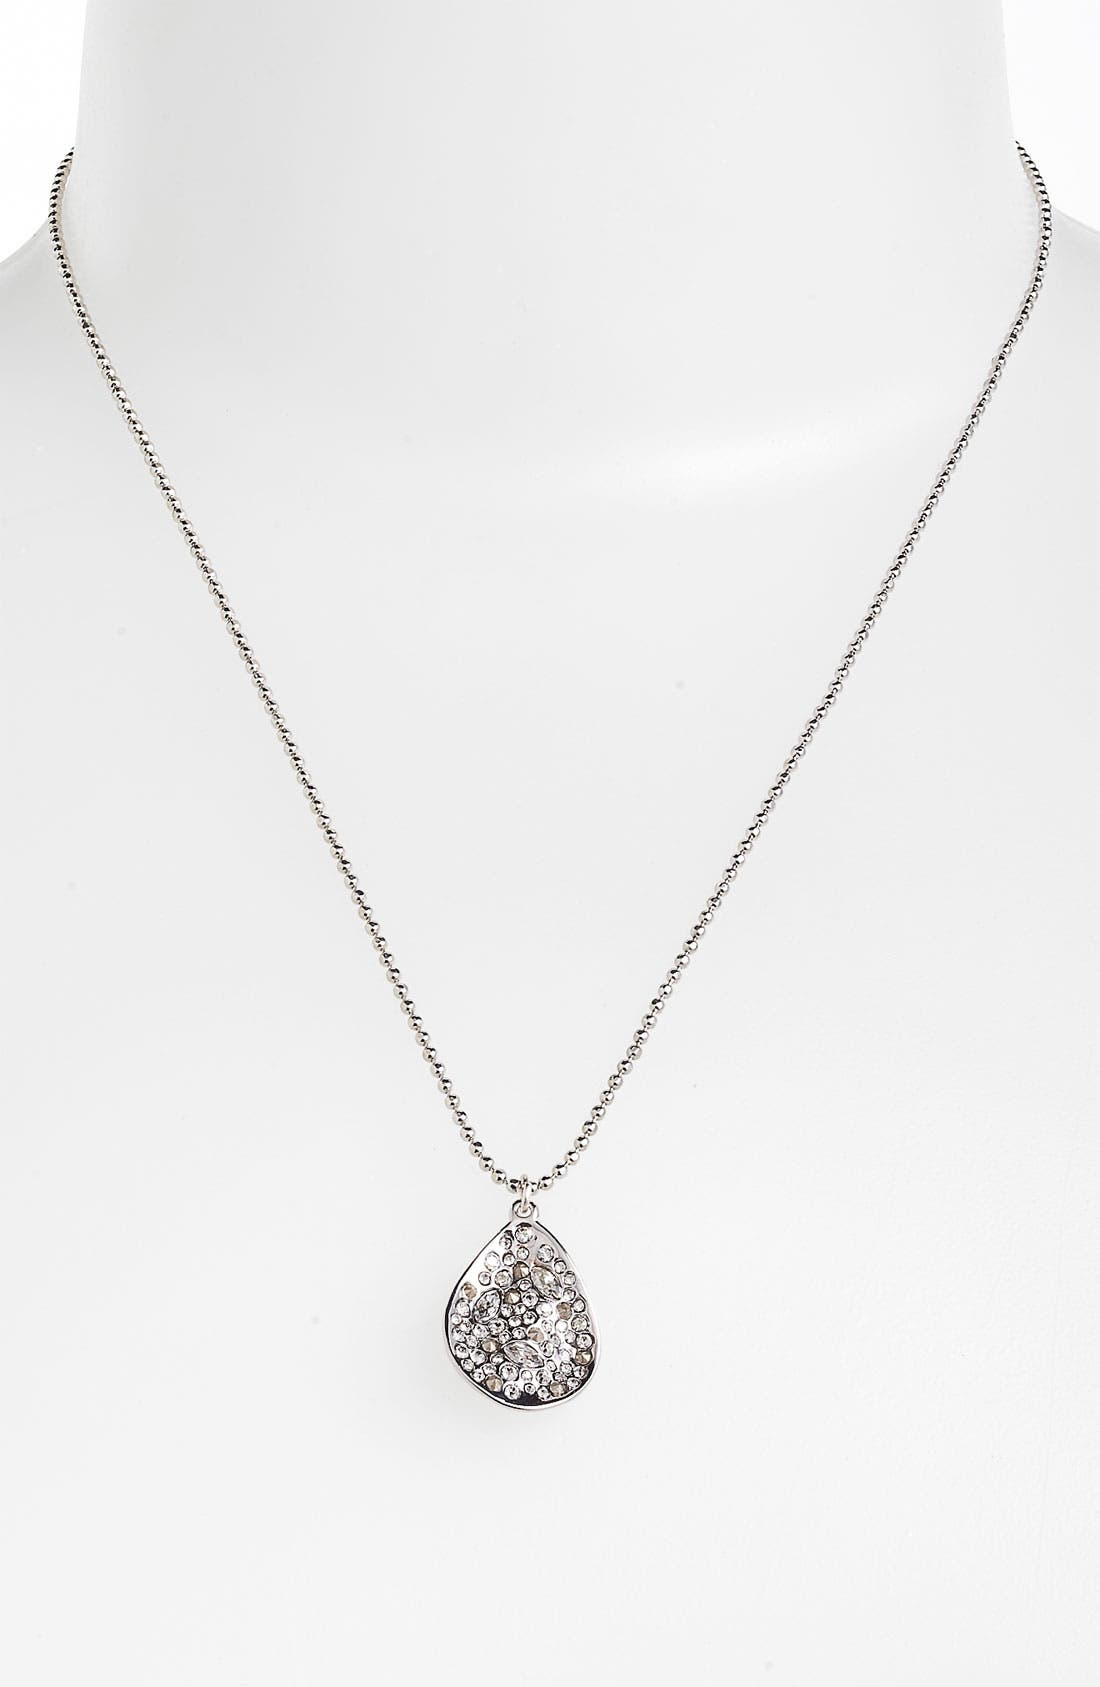 Alternate Image 1 Selected - Alexis Bittar 'Miss Havisham' Small Teardrop Pendant Necklace